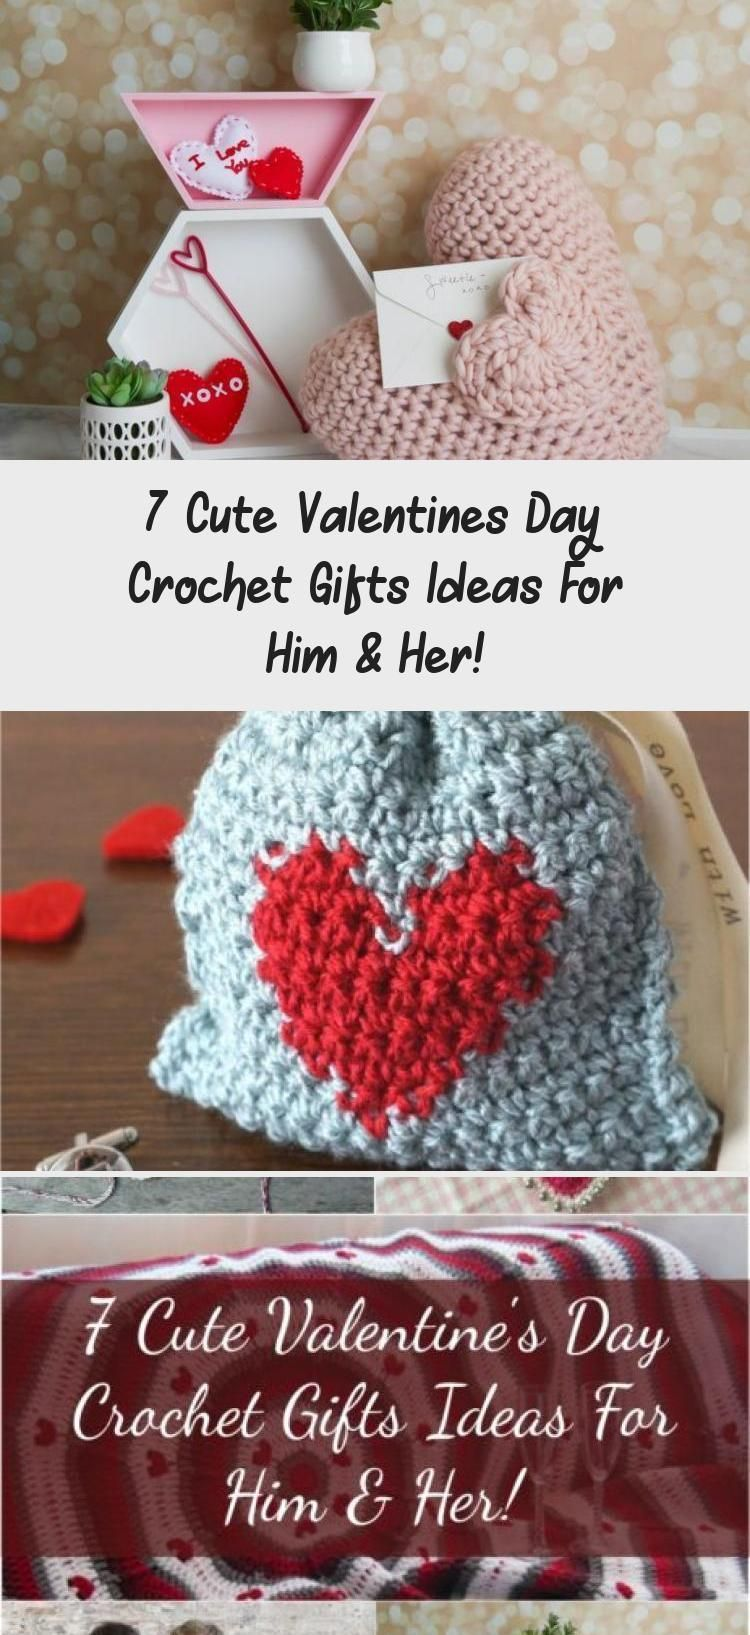 7 cute valentines day crochet gifts ideas for him her